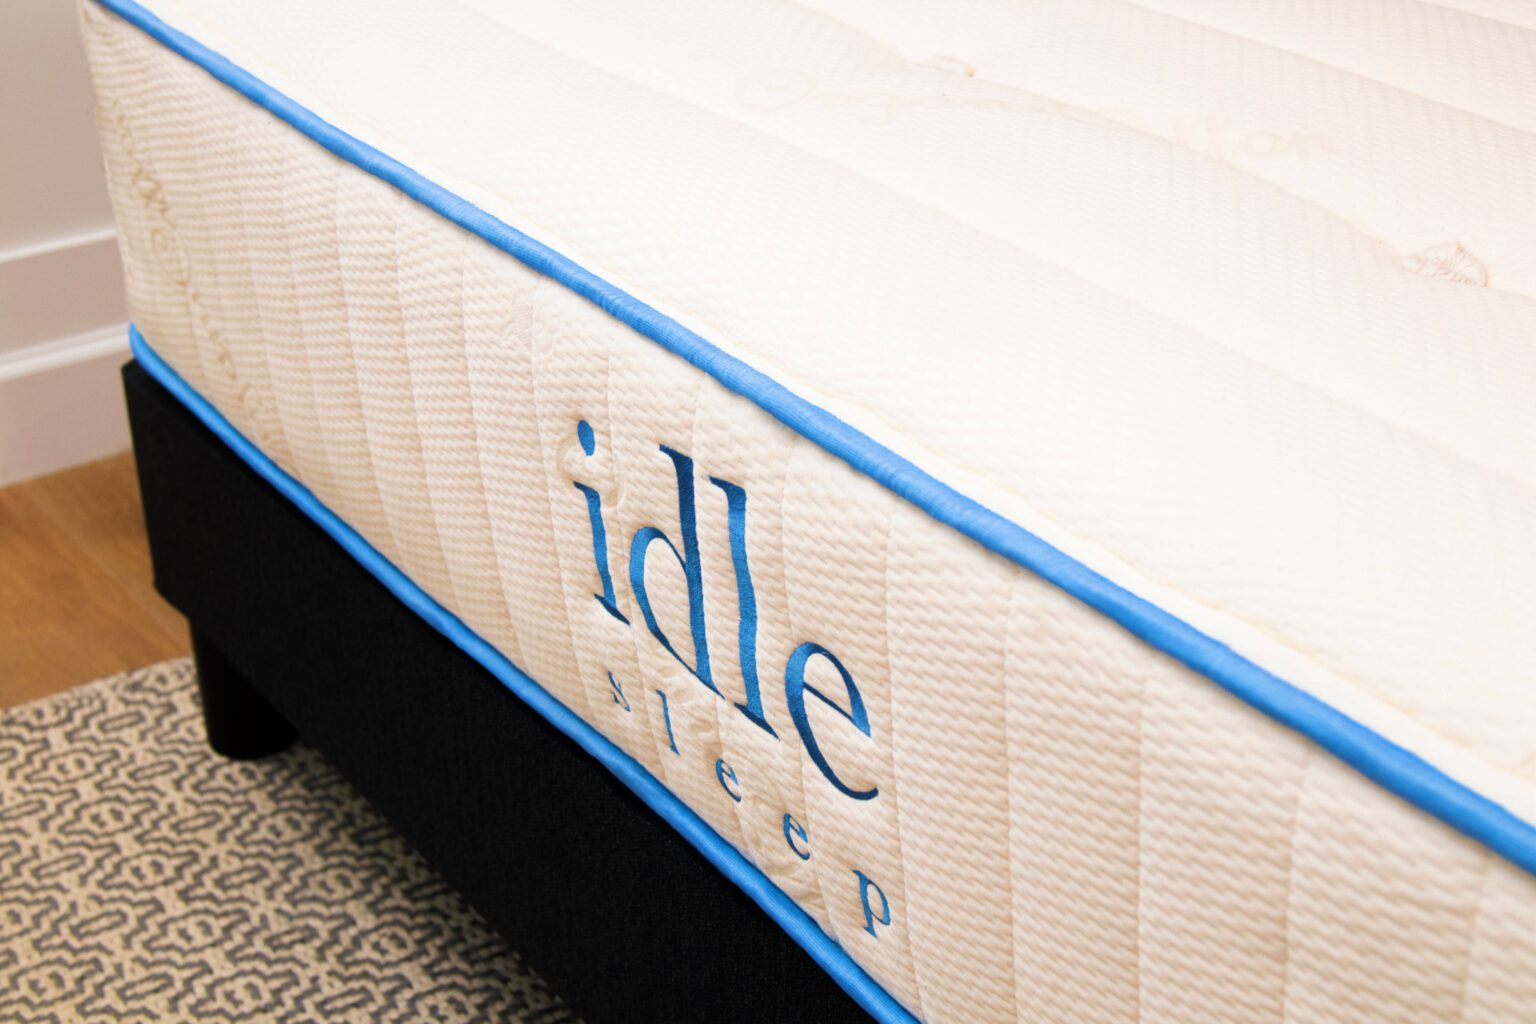 In this Idle Sleep Latex review, I give you all the specifications you need to know, plus I give you my personal thoughts on this natural latex mattress.